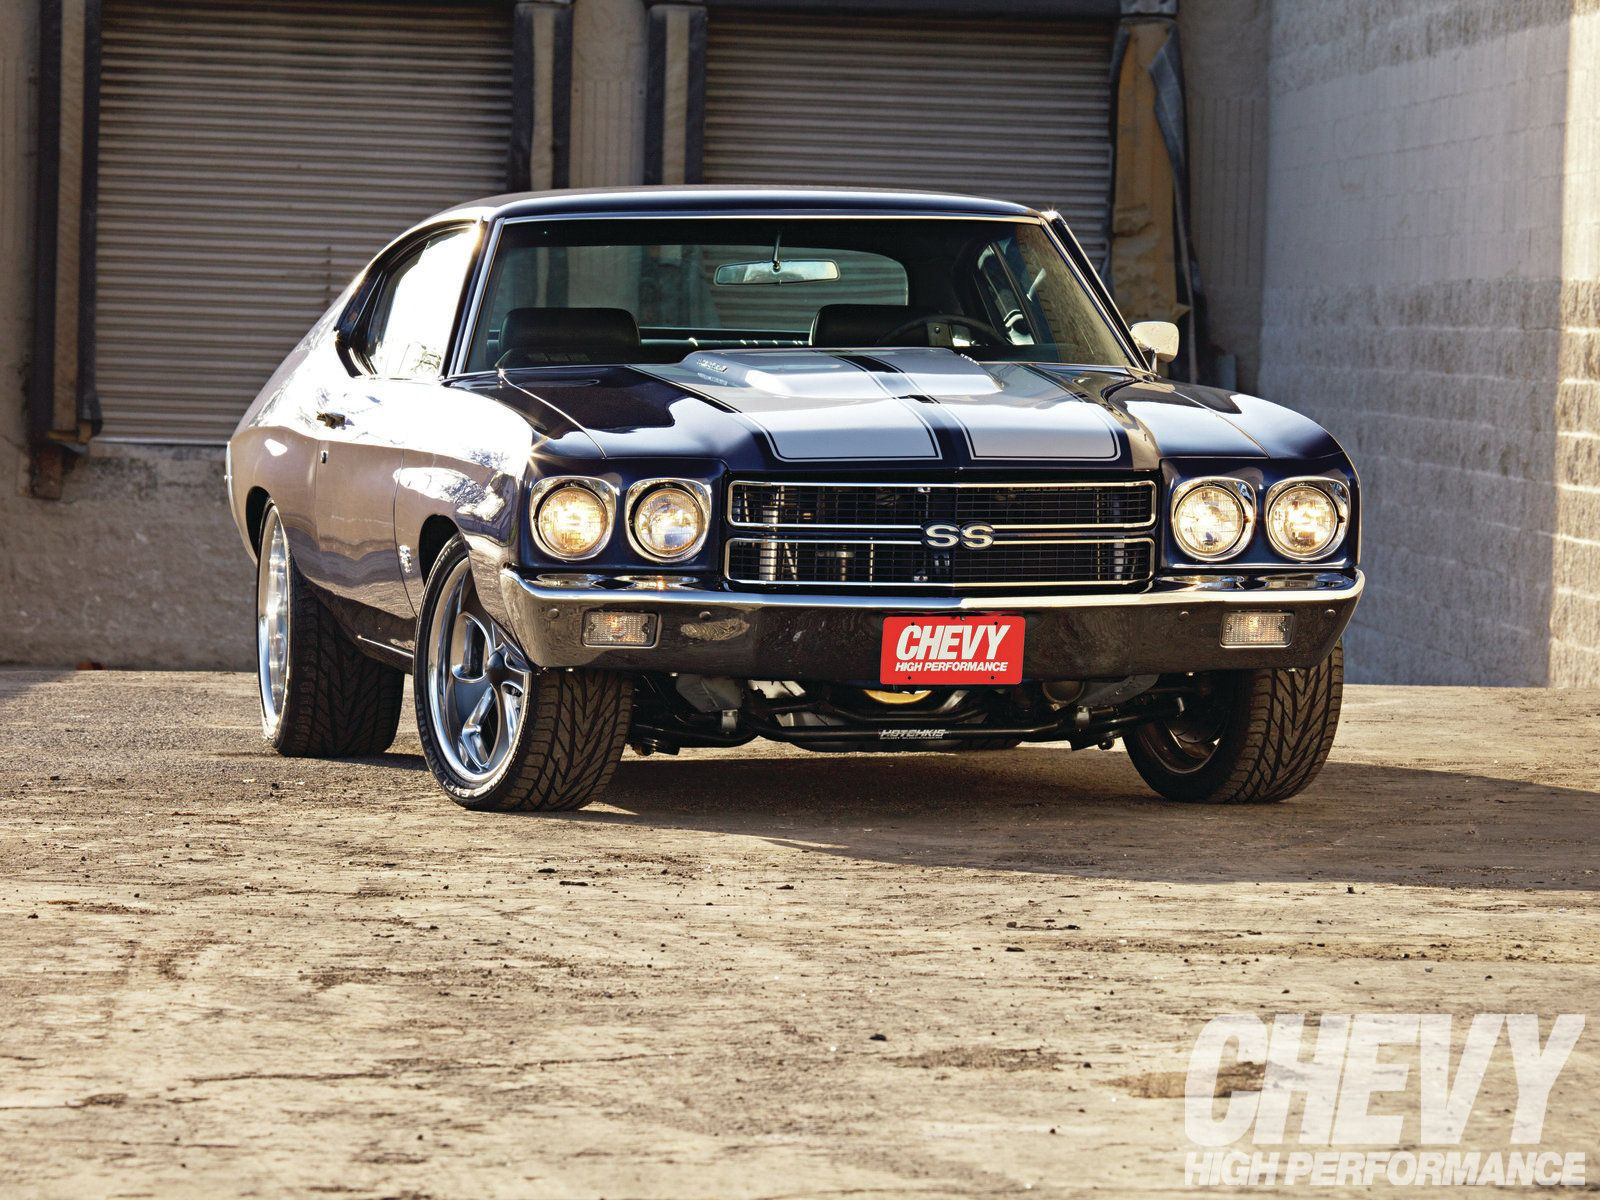 1970 Chevrolet Chevelle Maintenance restoration of old vintage